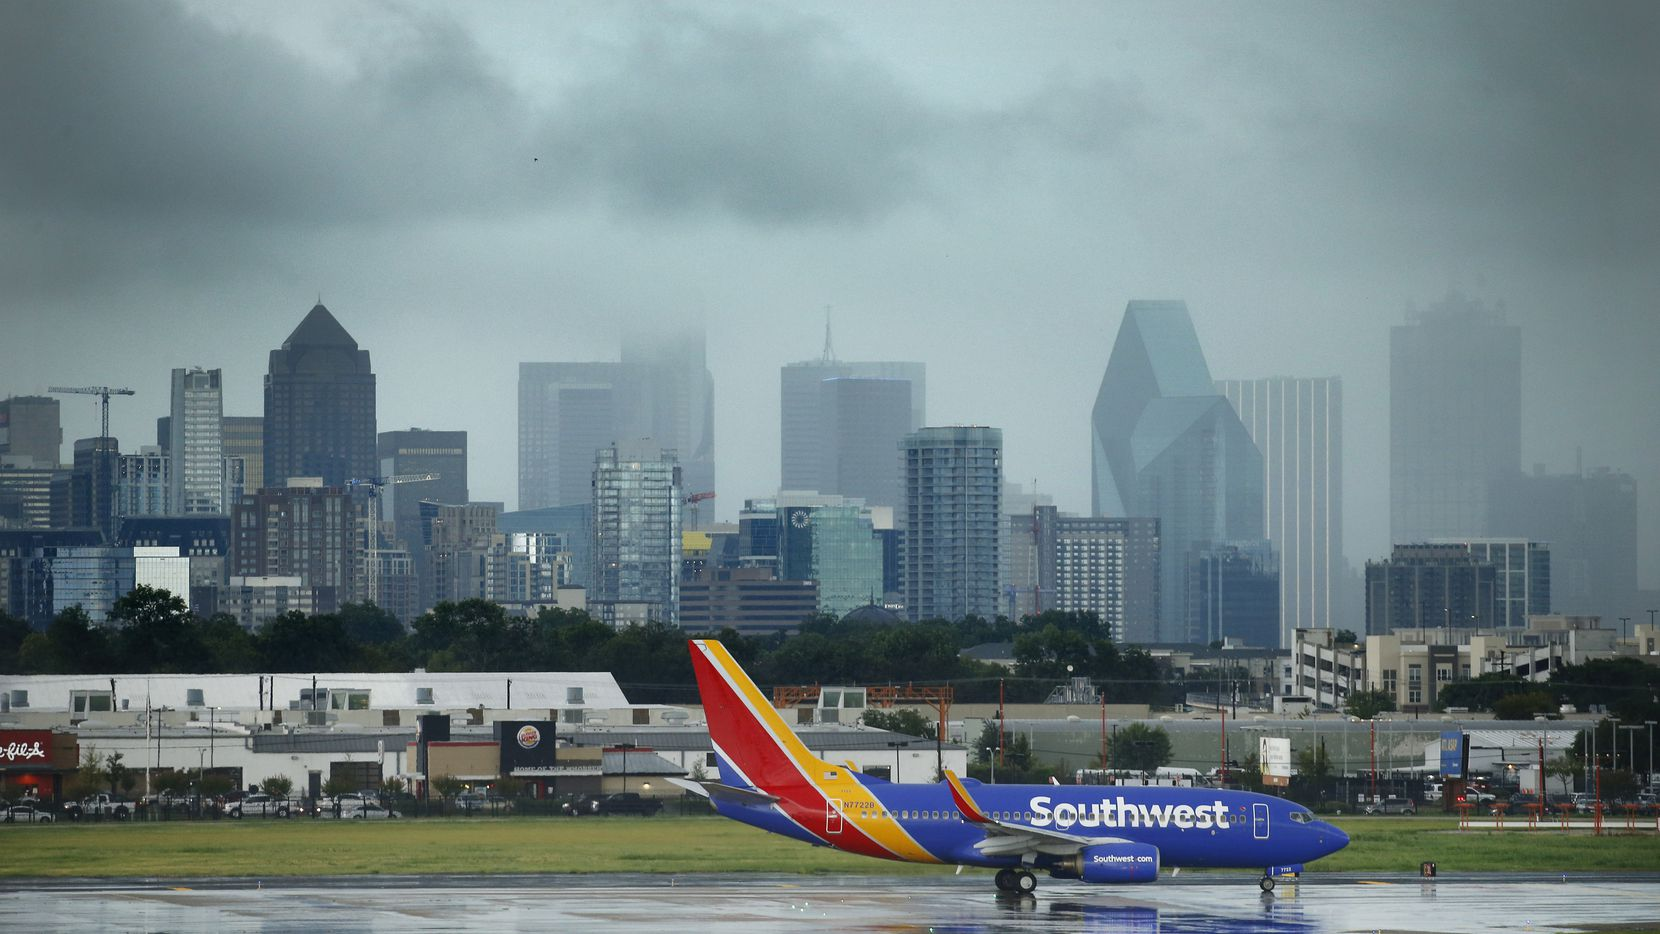 Strong storms associated with a cold front train over downtown Dallas as a Southwest Airlines 737 bound for San Antonio waits to take off from Dallas Love Field, Wednesday, September 9, 2020.(Tom Fox/The Dallas Morning News)